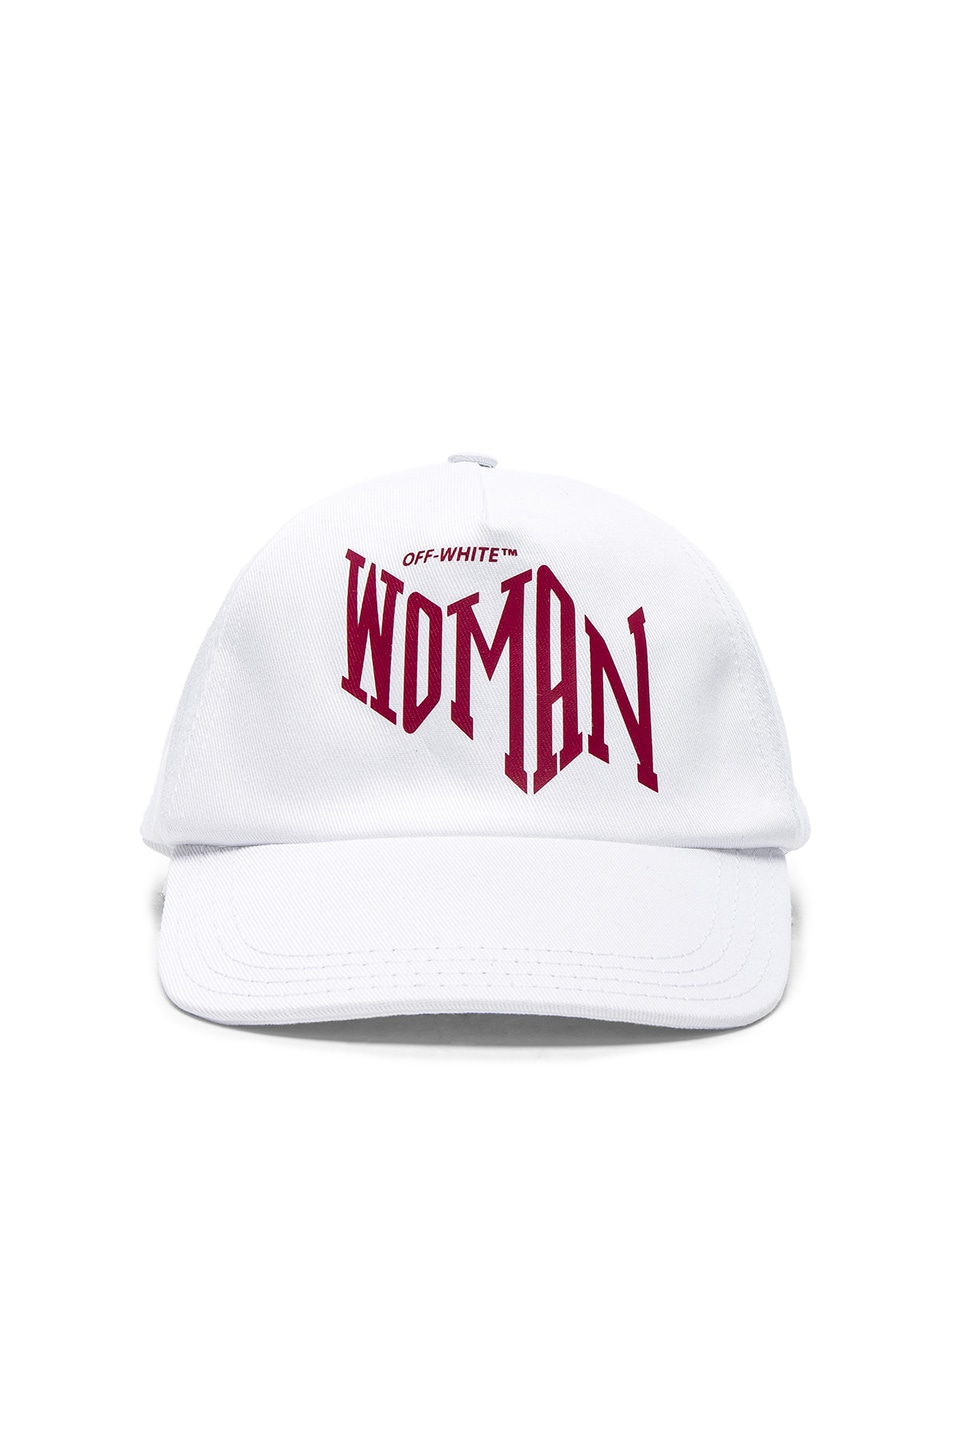 Image 1 of OFF-WHITE Woman Baseball Cap in White & Bordeaux